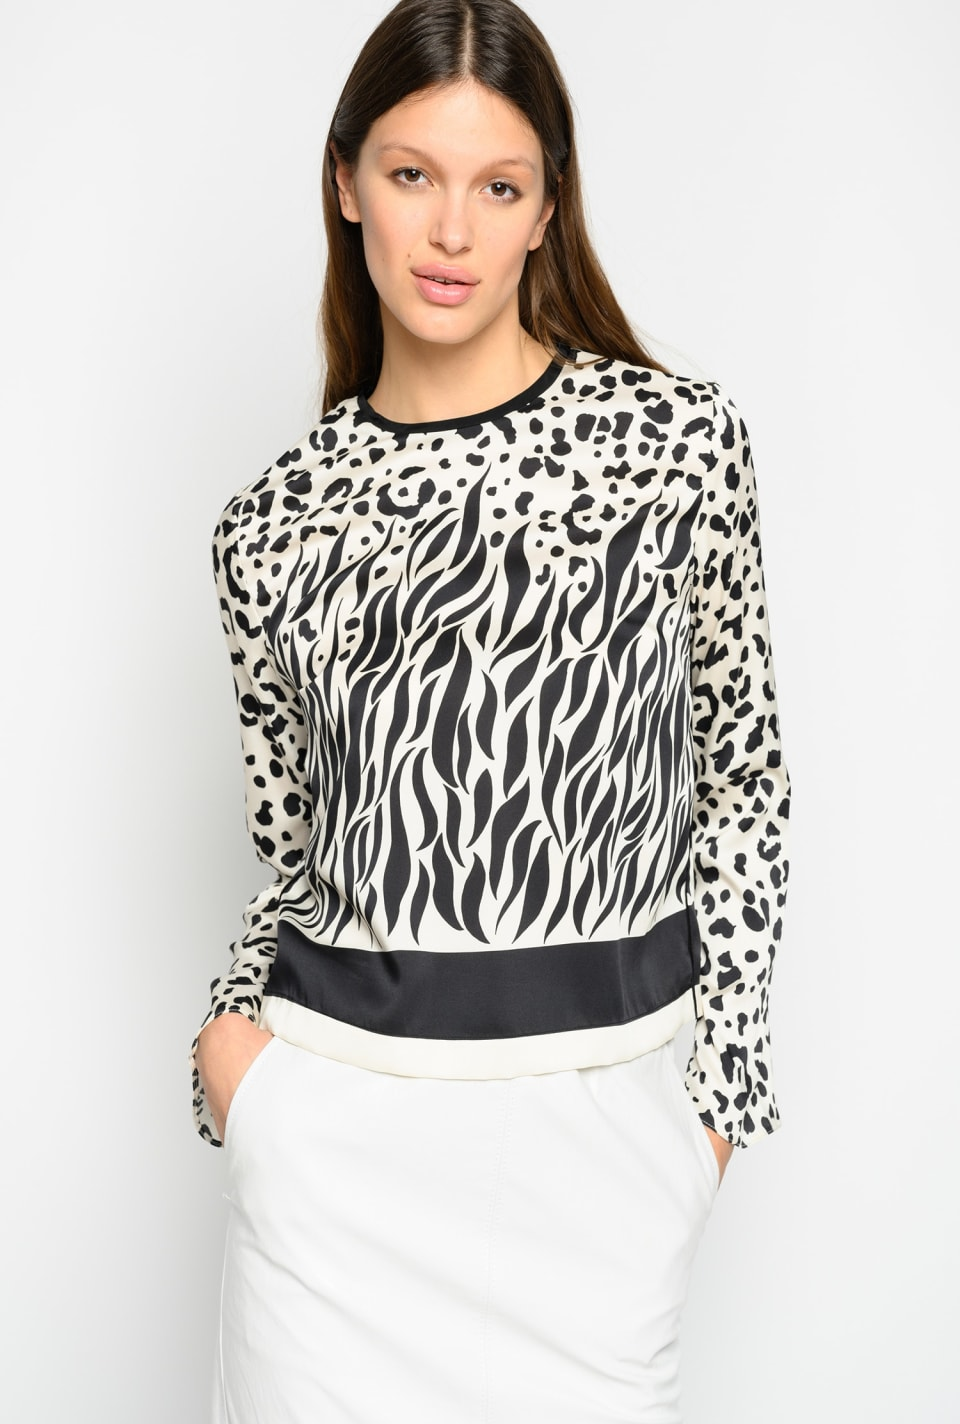 Blouse with mixed faded animal pattern